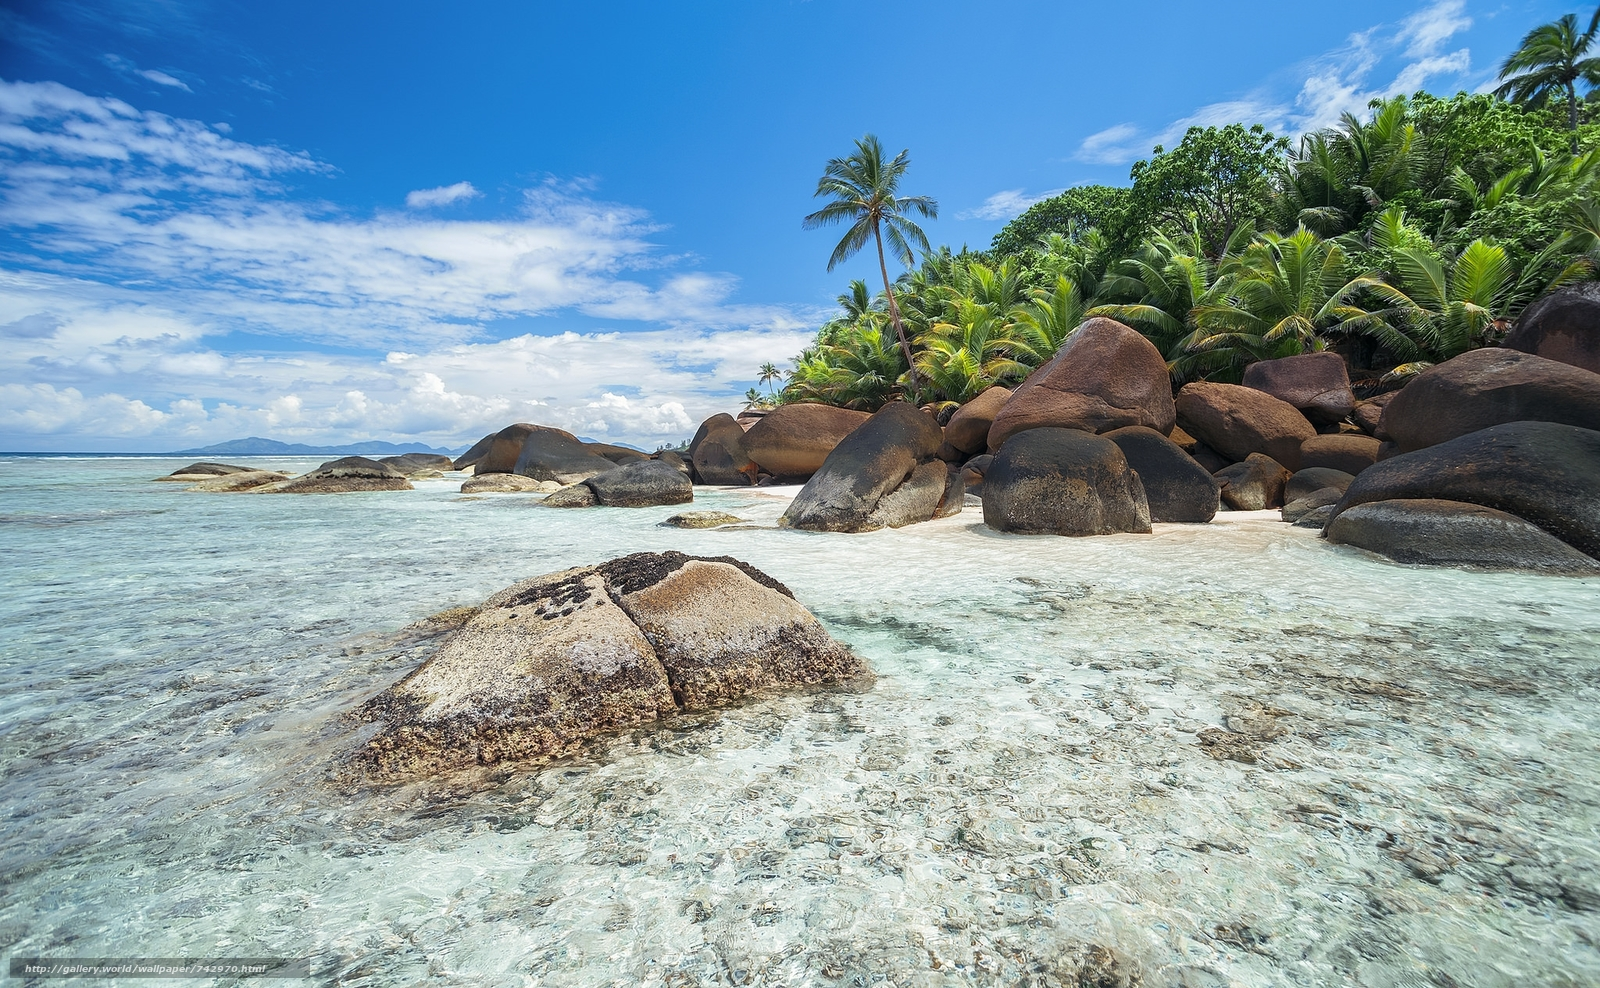 Seychelles, sea, Coast, Island, stones, palm trees, beach, landscape